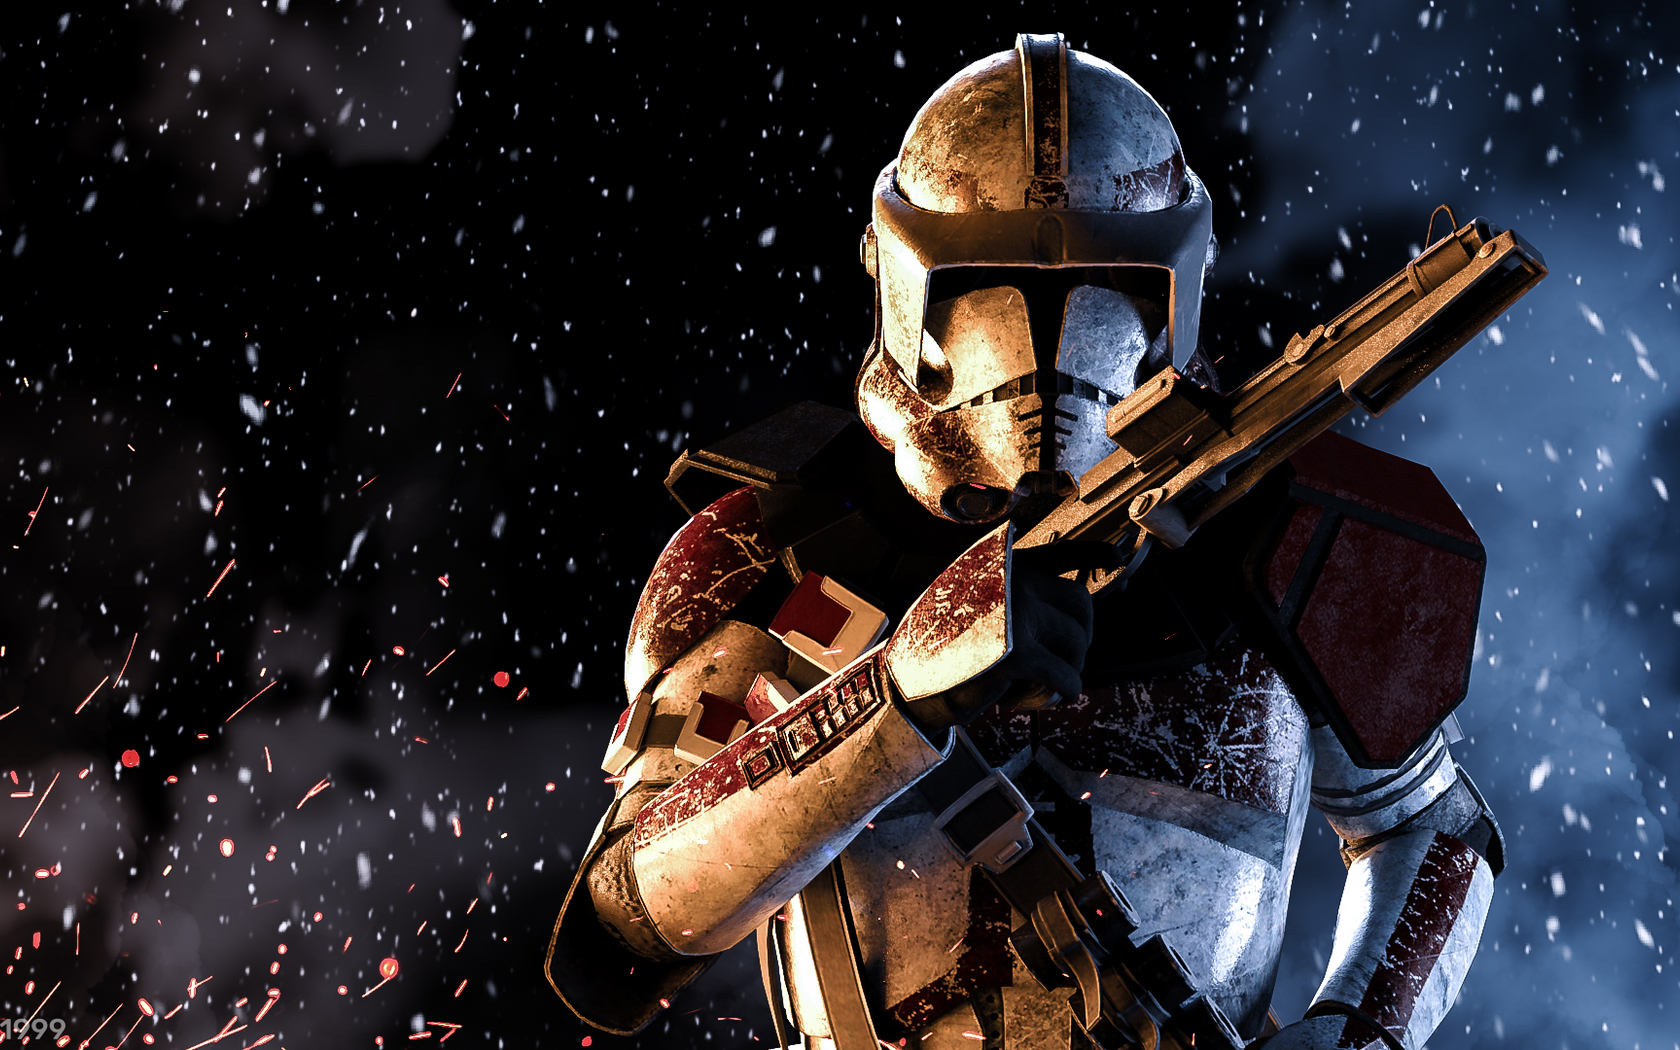 1680x1050 Clone Trooper Star Wars Hd 1680x1050 Resolution Hd 4k Wallpapers Images Backgrounds Photos And Pictures